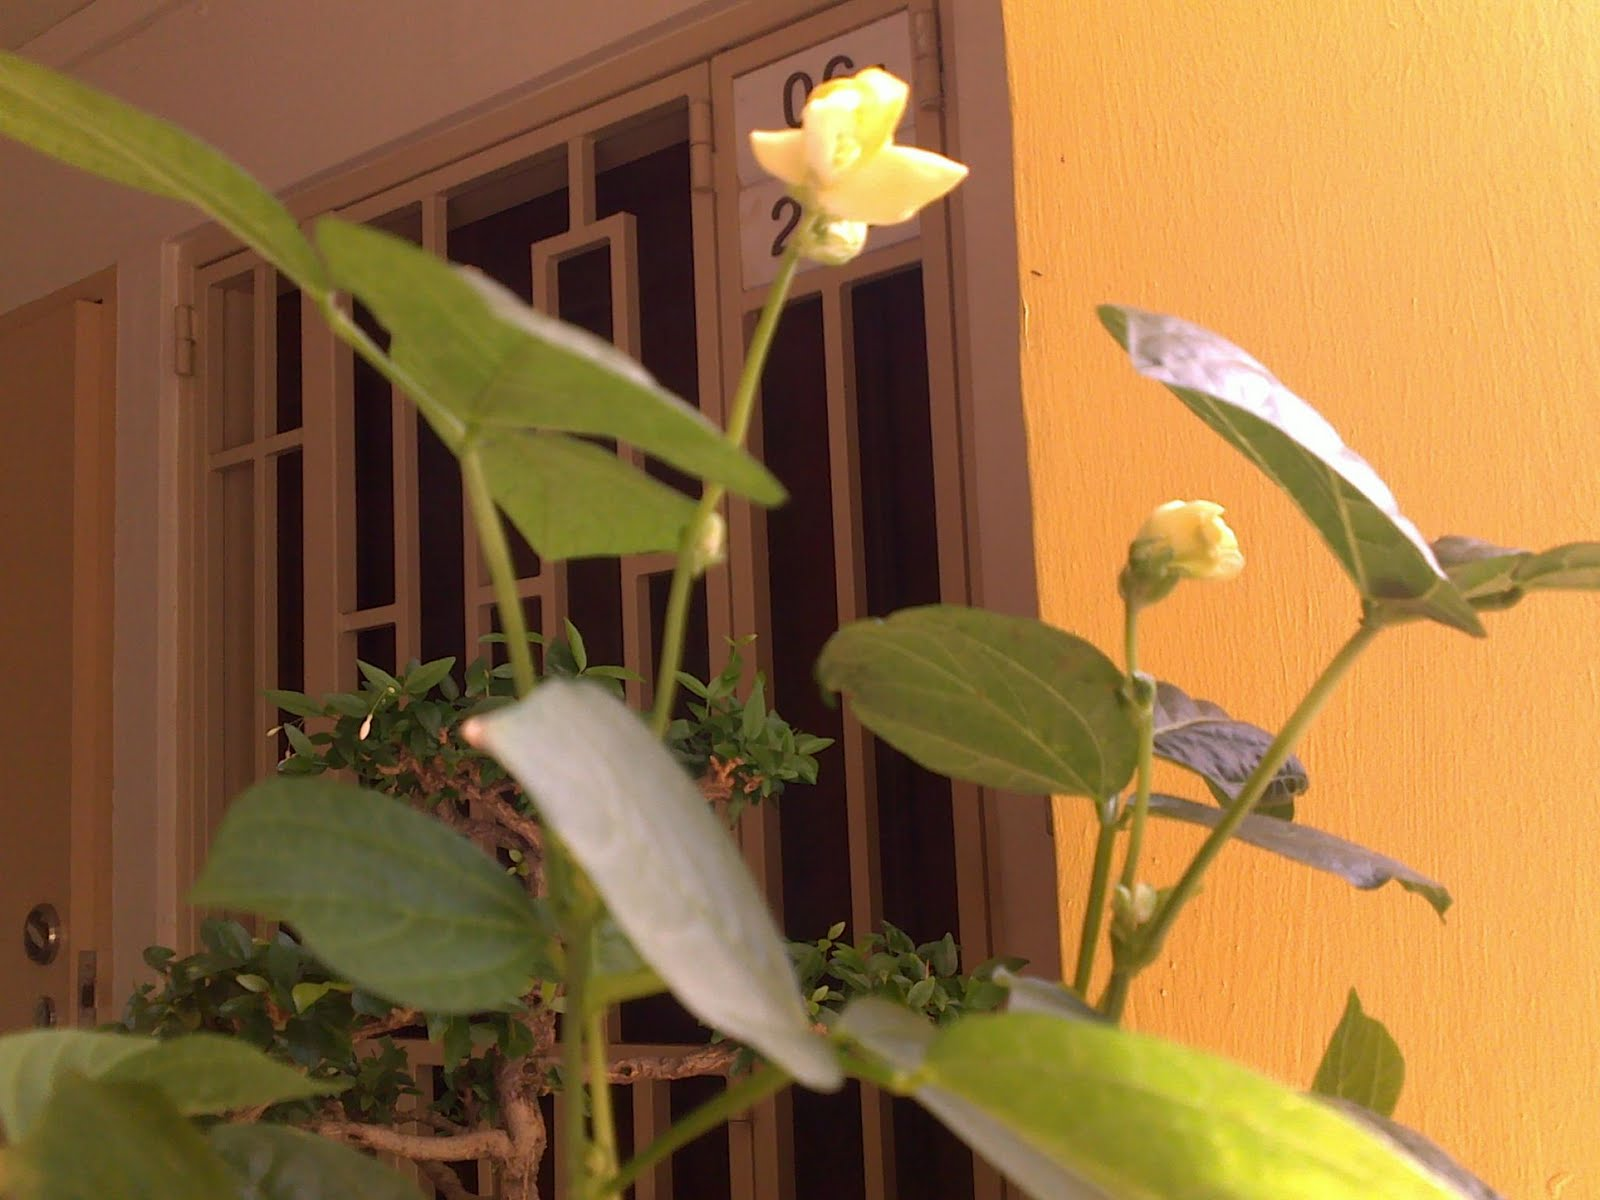 Lenas diary red bean plant too close up cannot see the petals of the flowers well notice the heart shaped leaves of the red bean plant green bean plant is of another shape try mightylinksfo